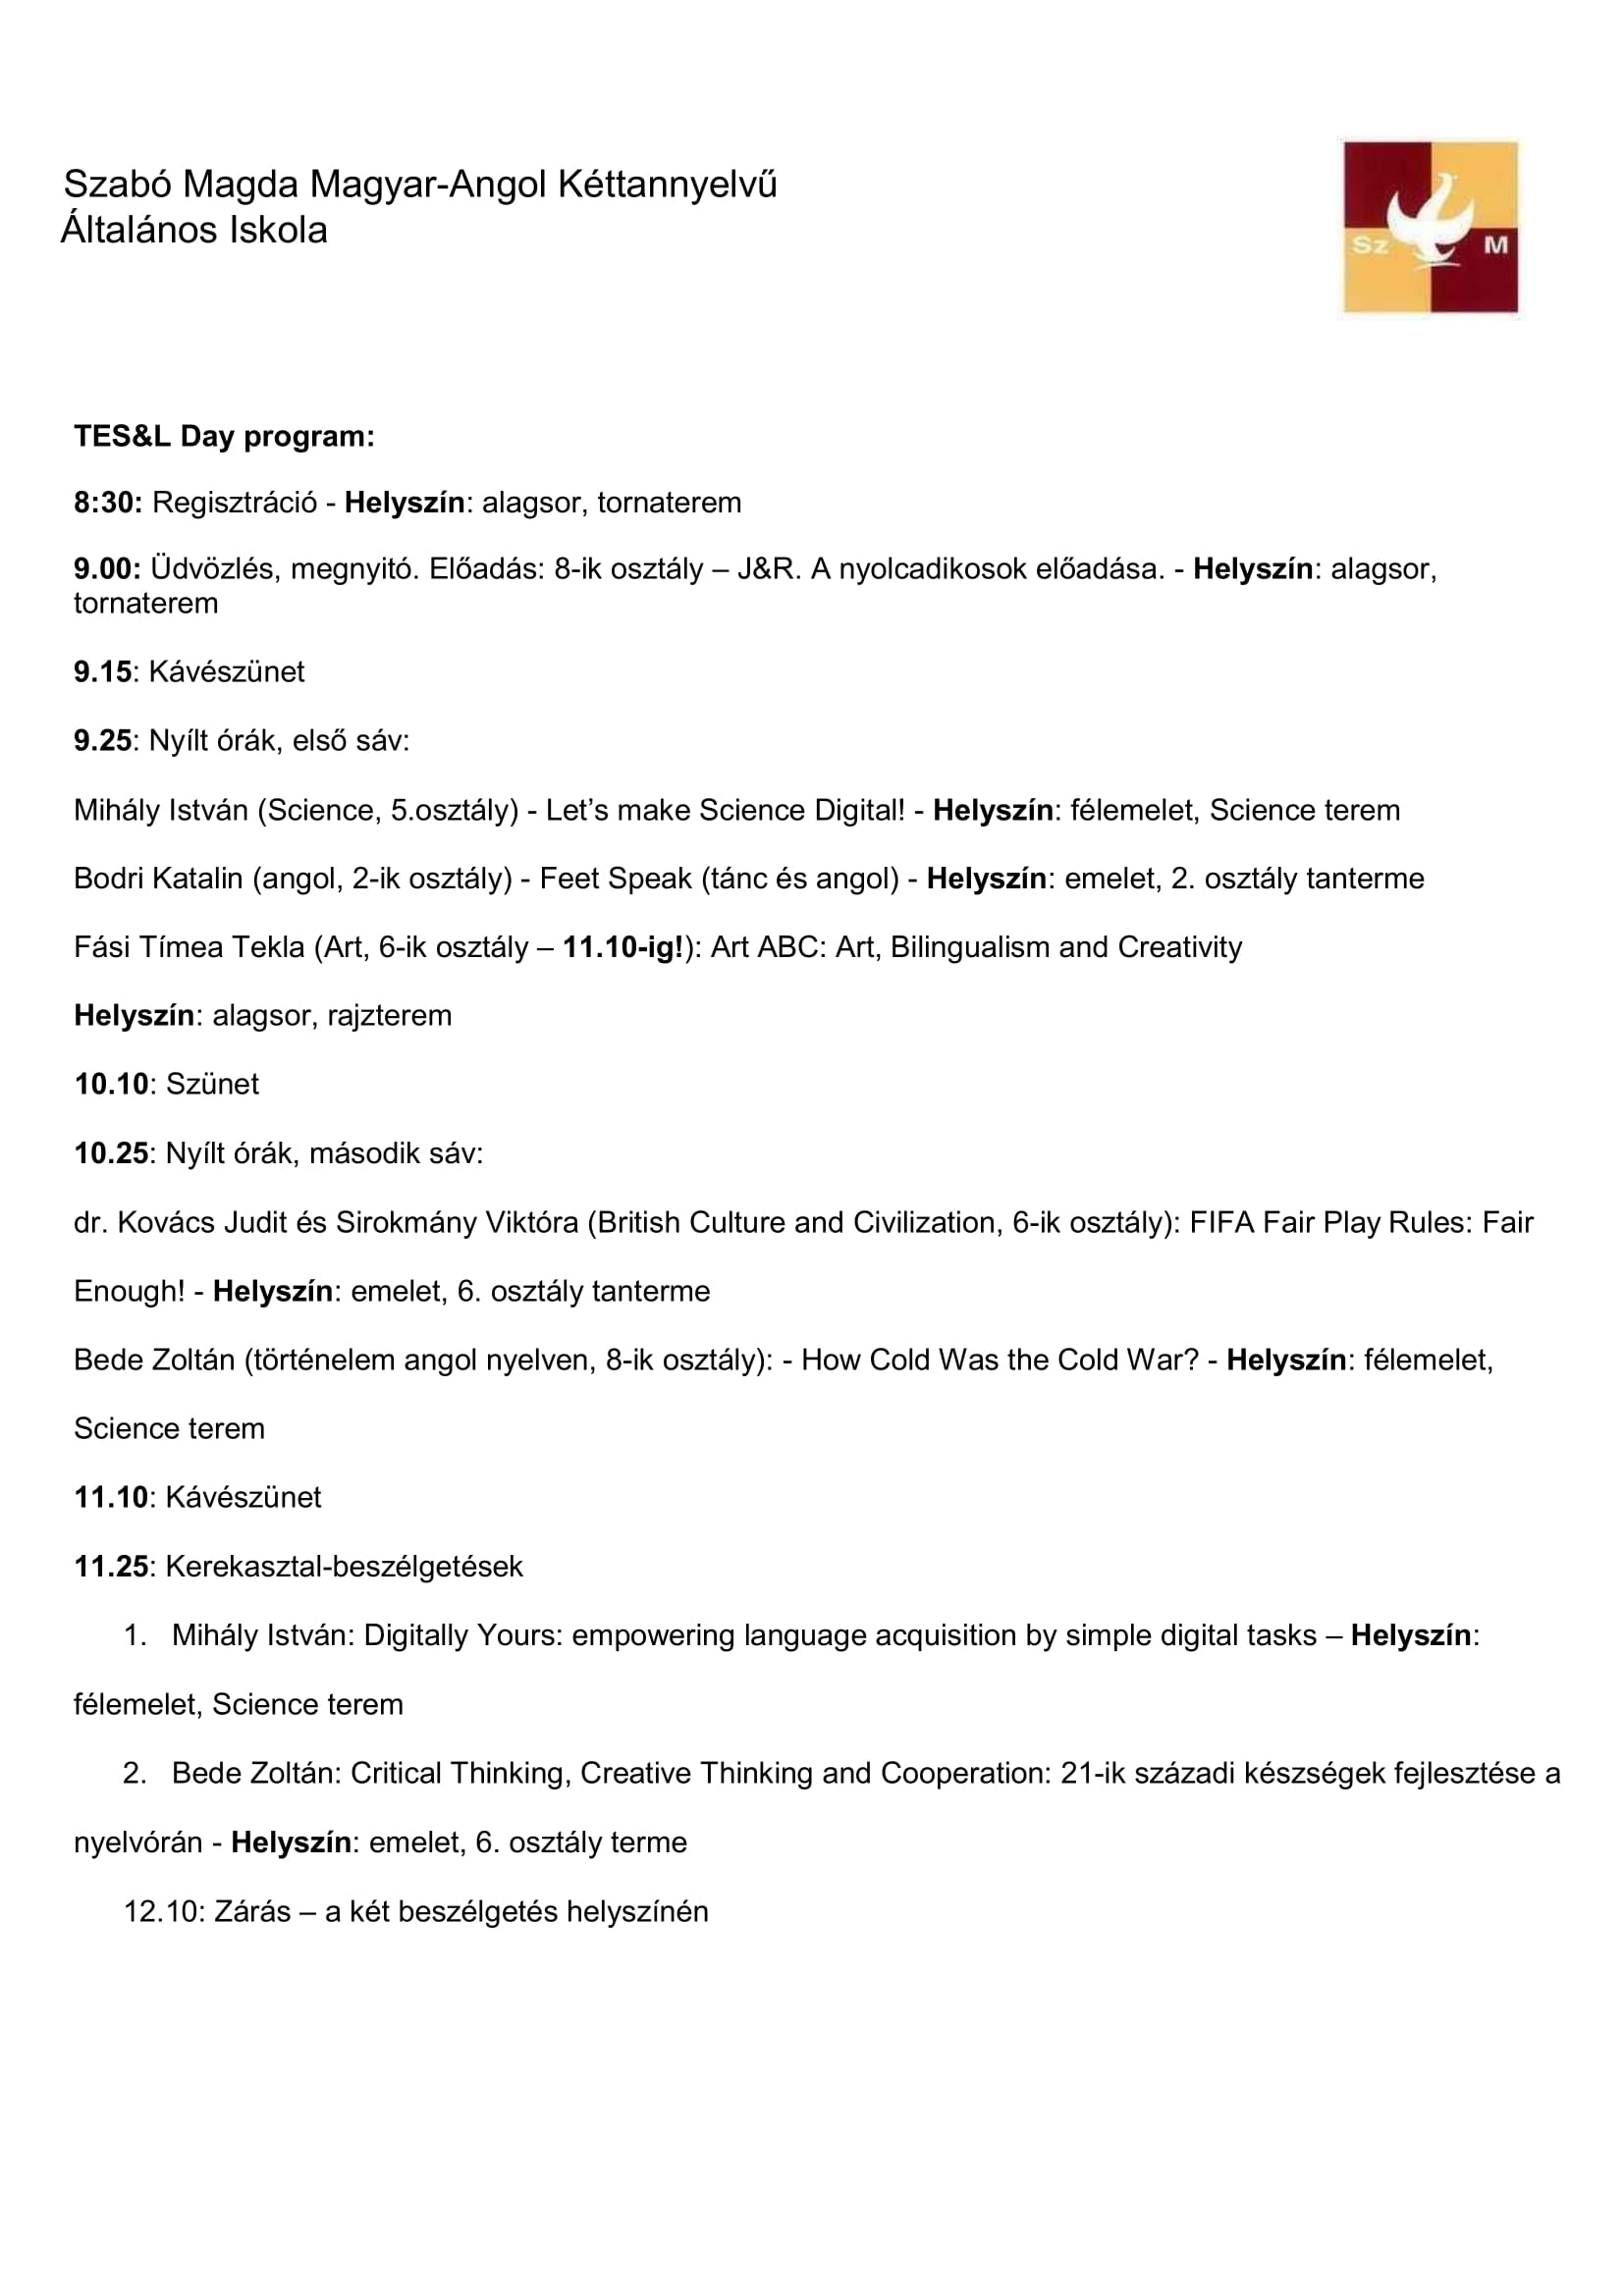 tesl_day_2018_finalprogram-1.jpg